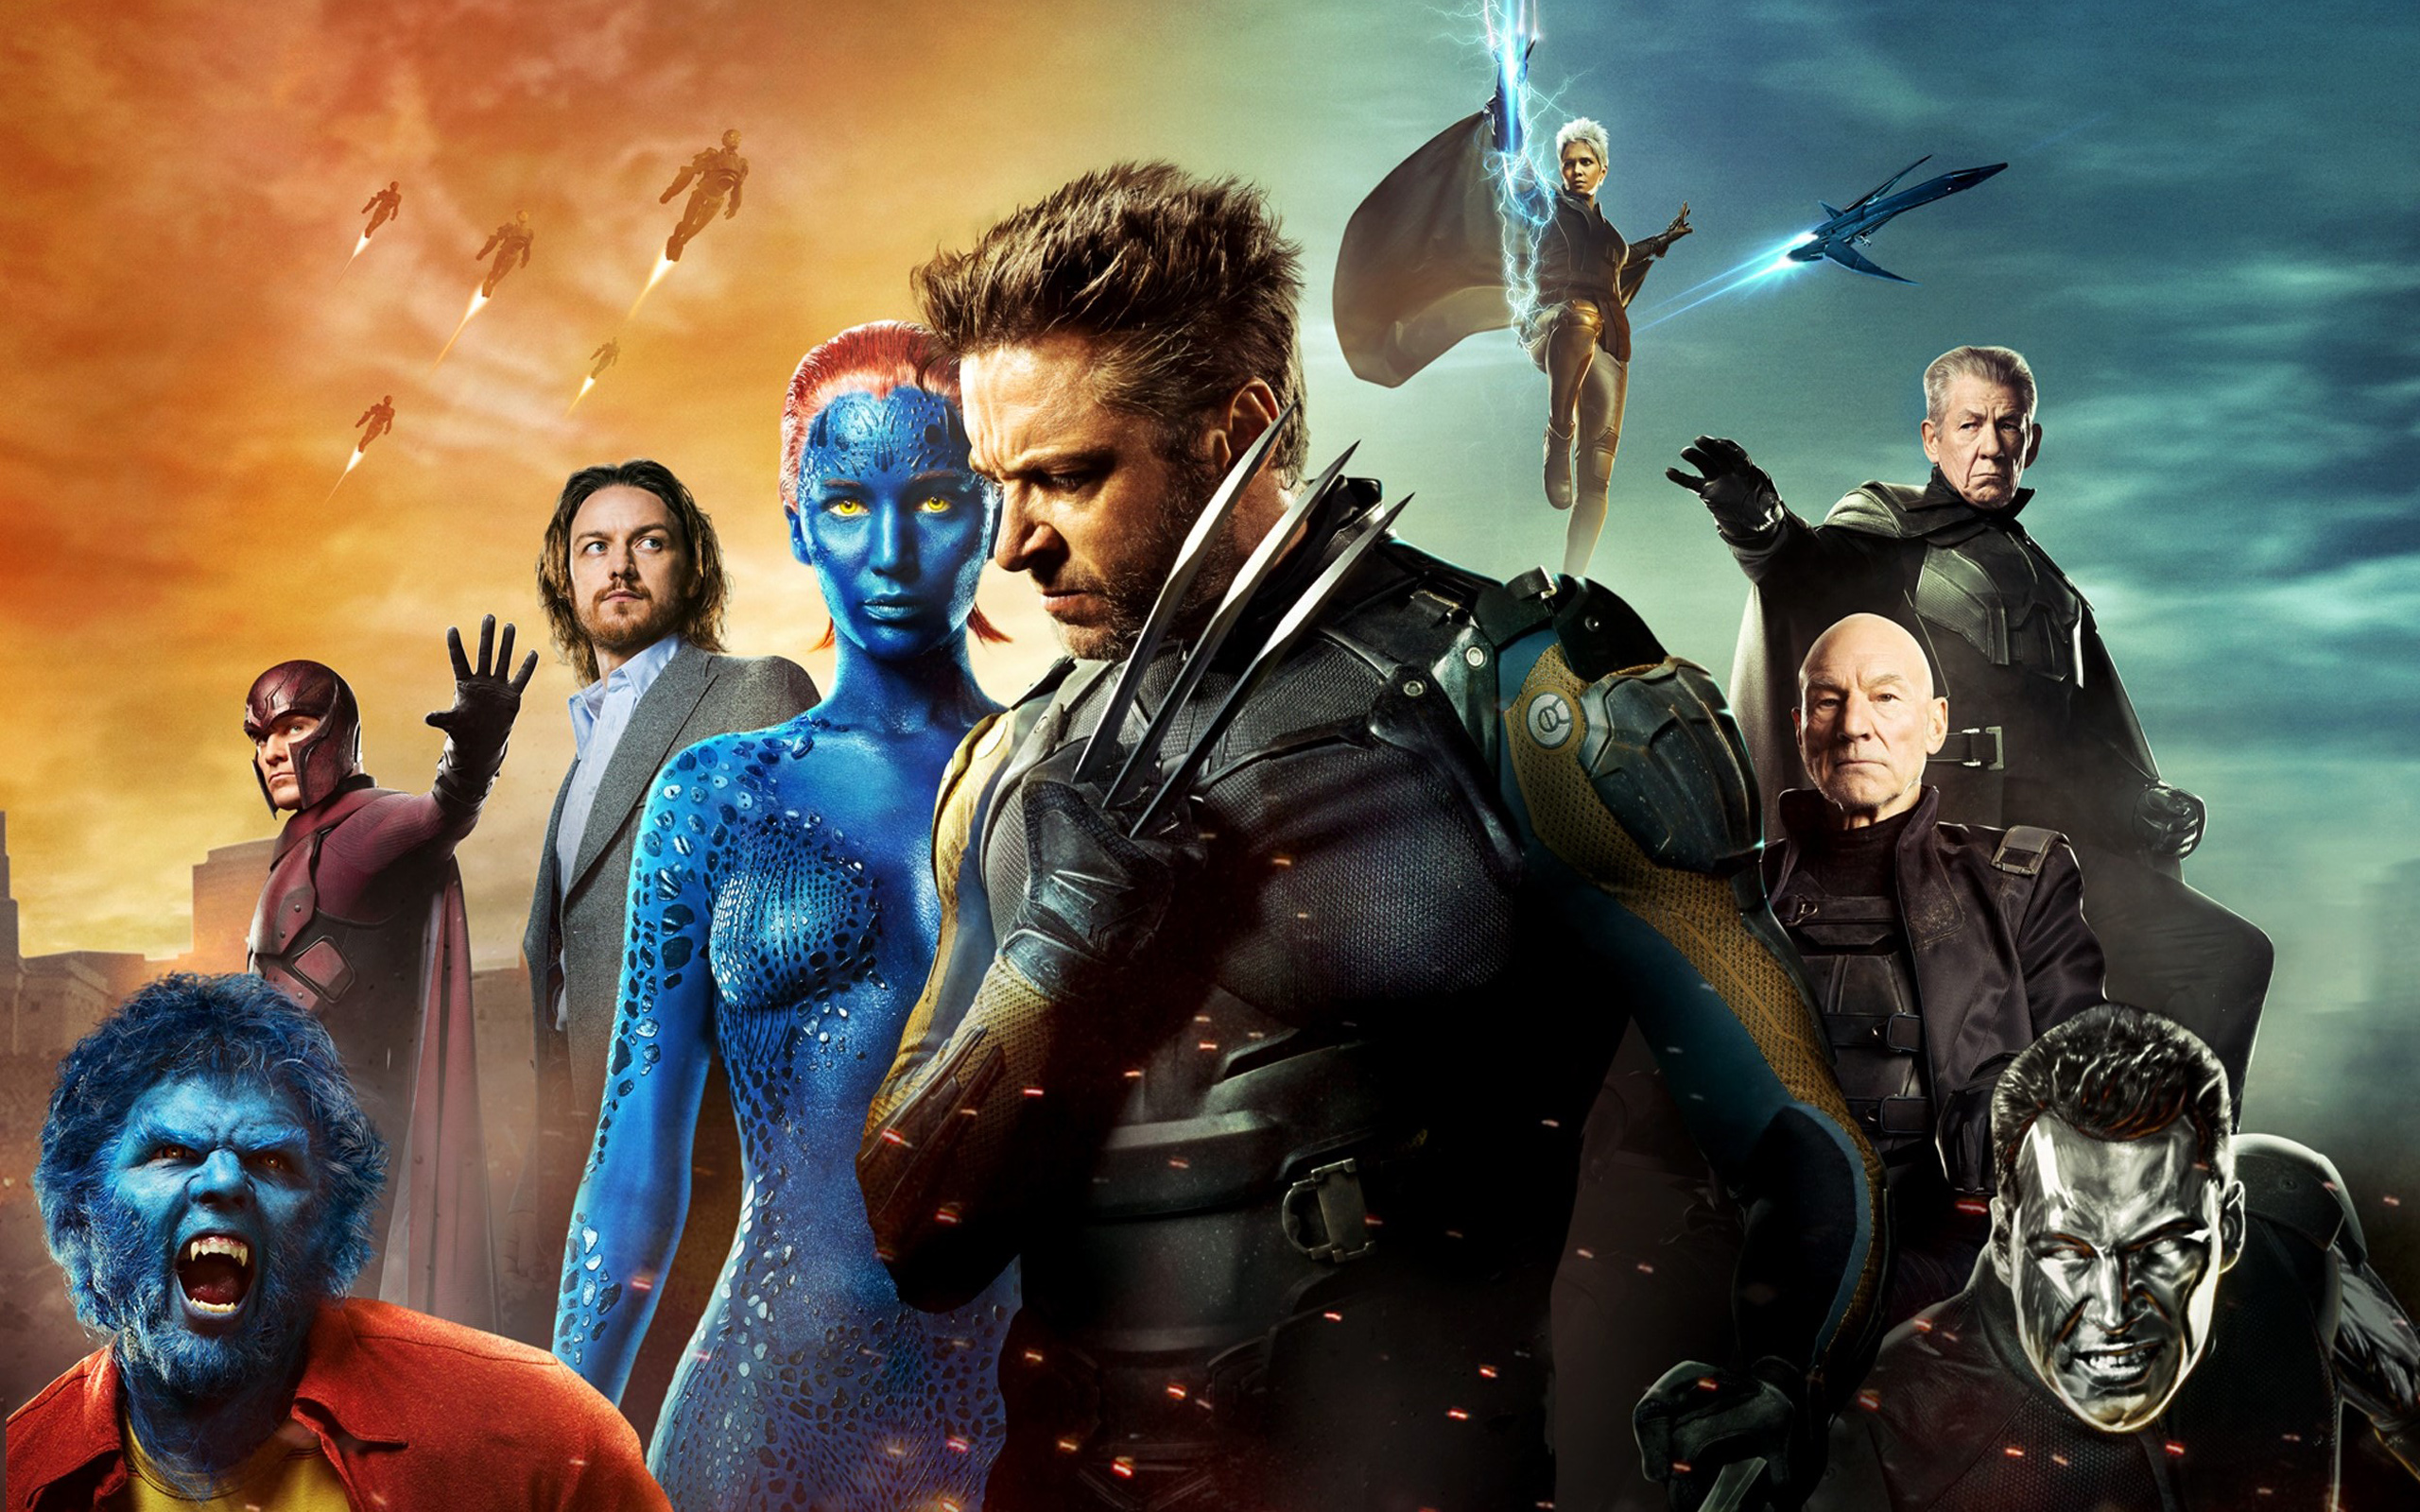 X Men Days of Future Past Poster 684.26 Kb